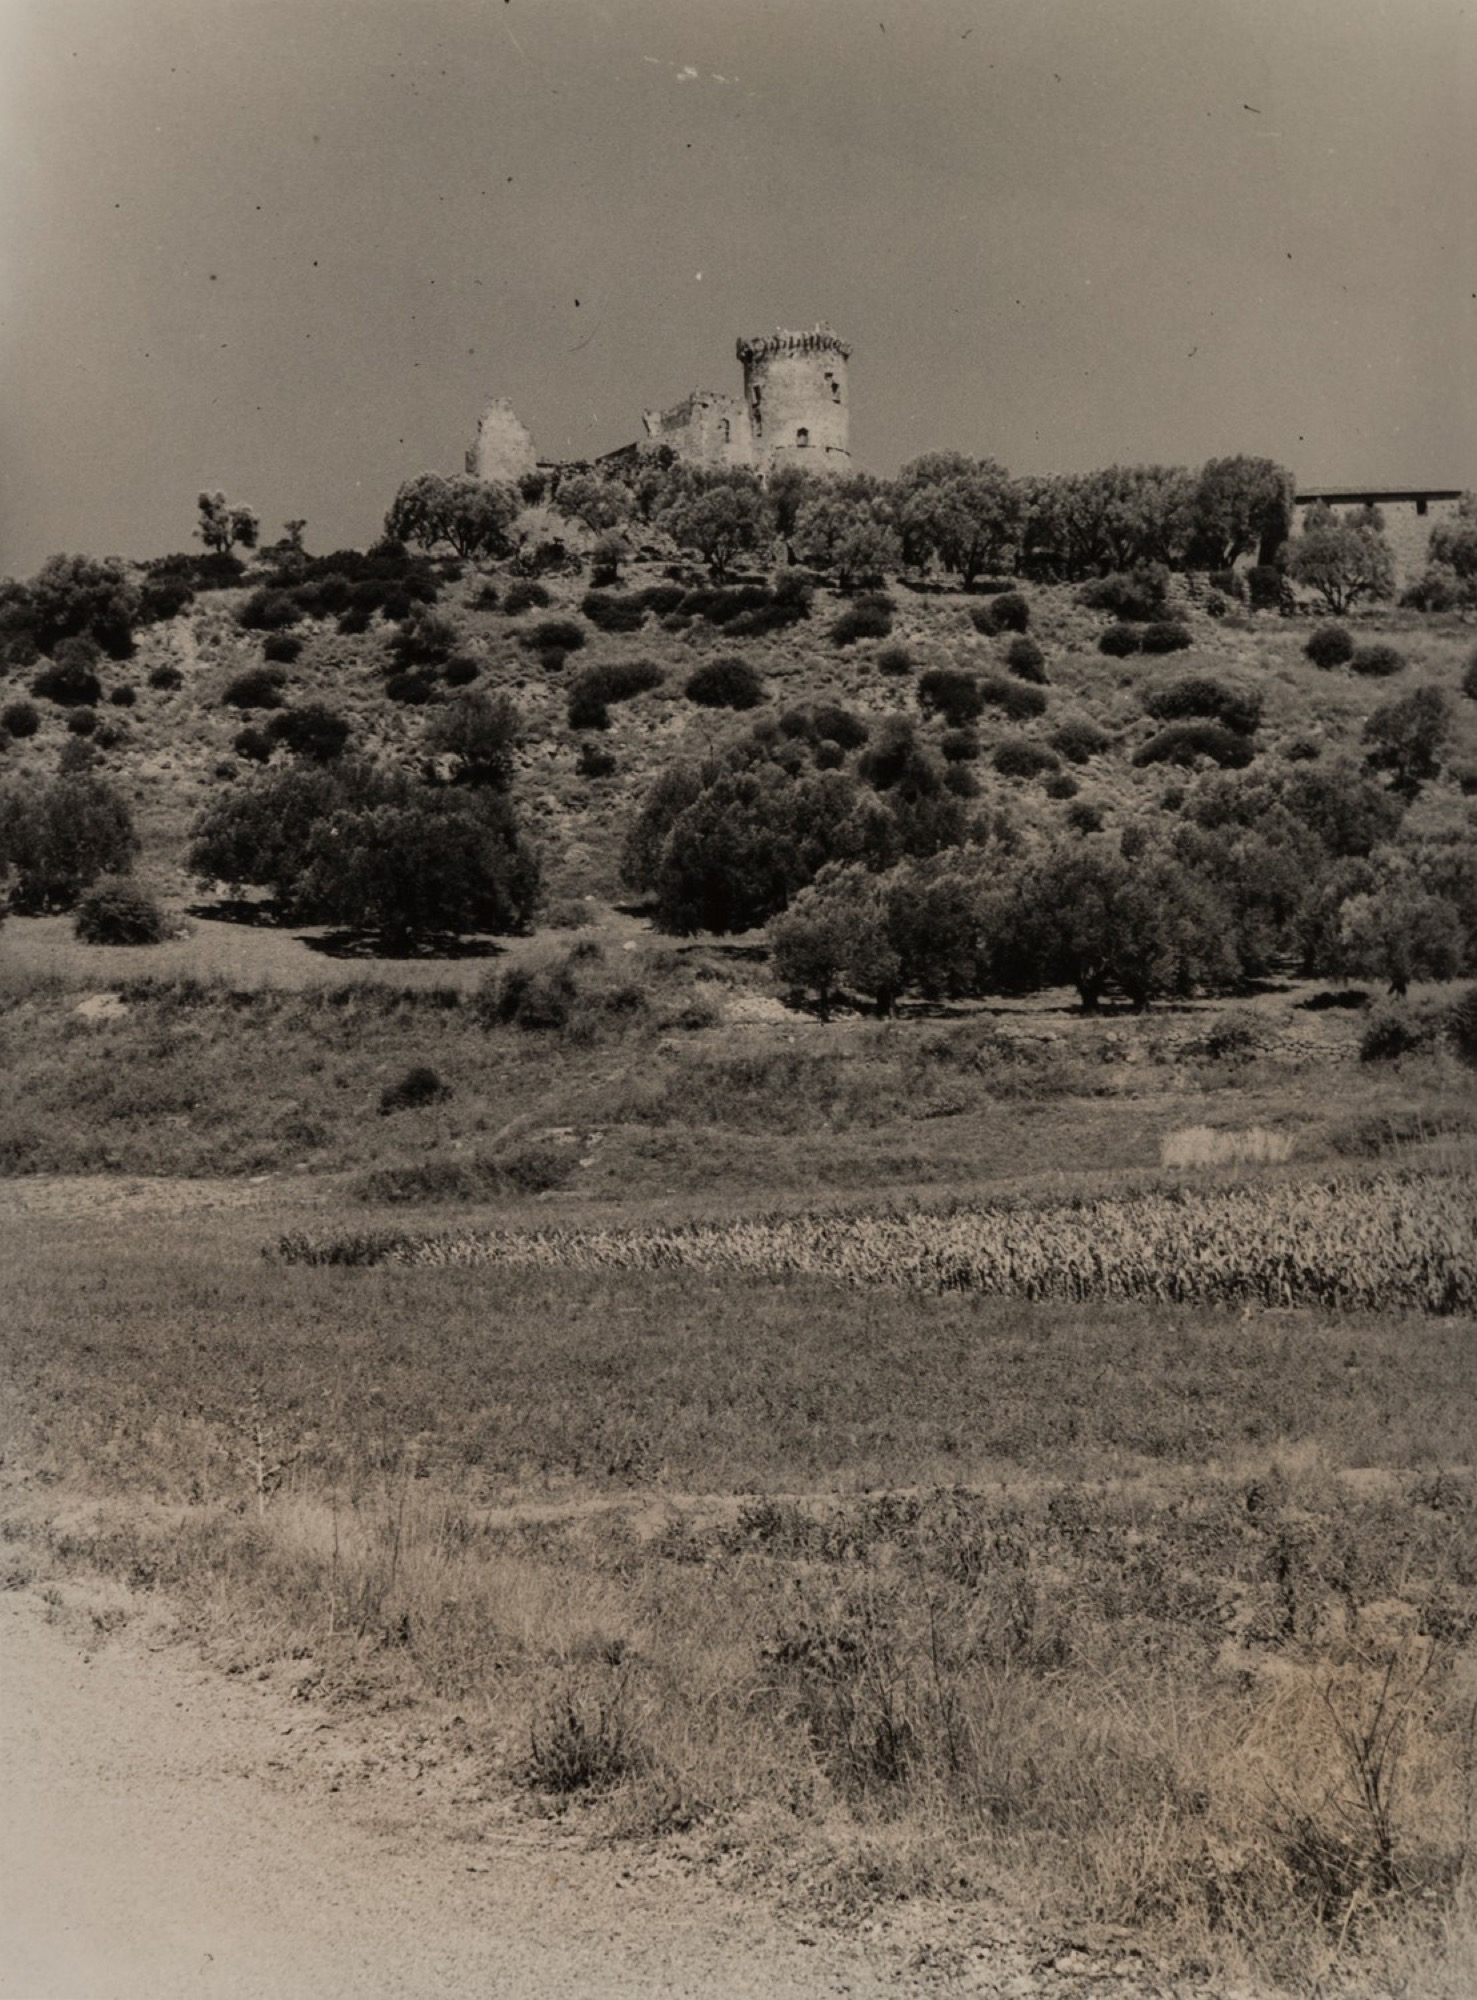 Giulio Parisio - Landscapes, years 1930/1940 - Eight vintage gelatin silver prints [...] - Image 2 of 9